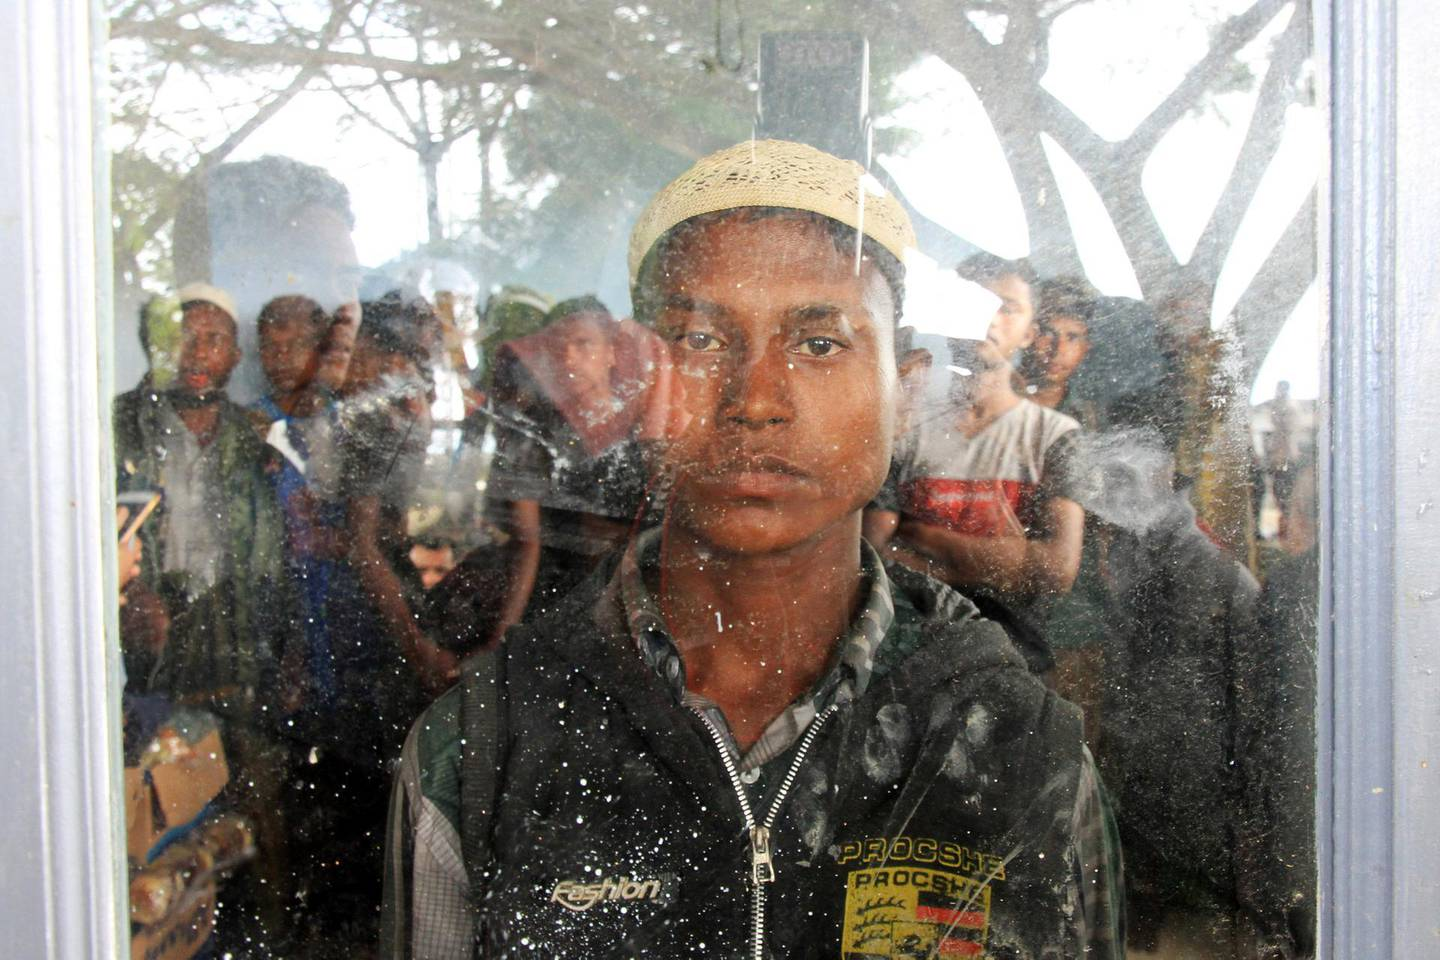 Rohingya Muslim people as seen inside a room at Kuala Idi Rayeuk port after arriving on a wooden boat in Aceh Timur, Indonesia, December 4, 2018.  Antara Foto/Syifa Yulinnas via REUTERS -  ATTENTION EDITORS - THIS IMAGE WAS PROVIDED BY A THIRD PARTY. MANDATORY CREDIT. INDONESIA OUT. NO COMMERCIAL OR EDITORIAL SALES IN INDONESIA     TPX IMAGES OF THE DAY